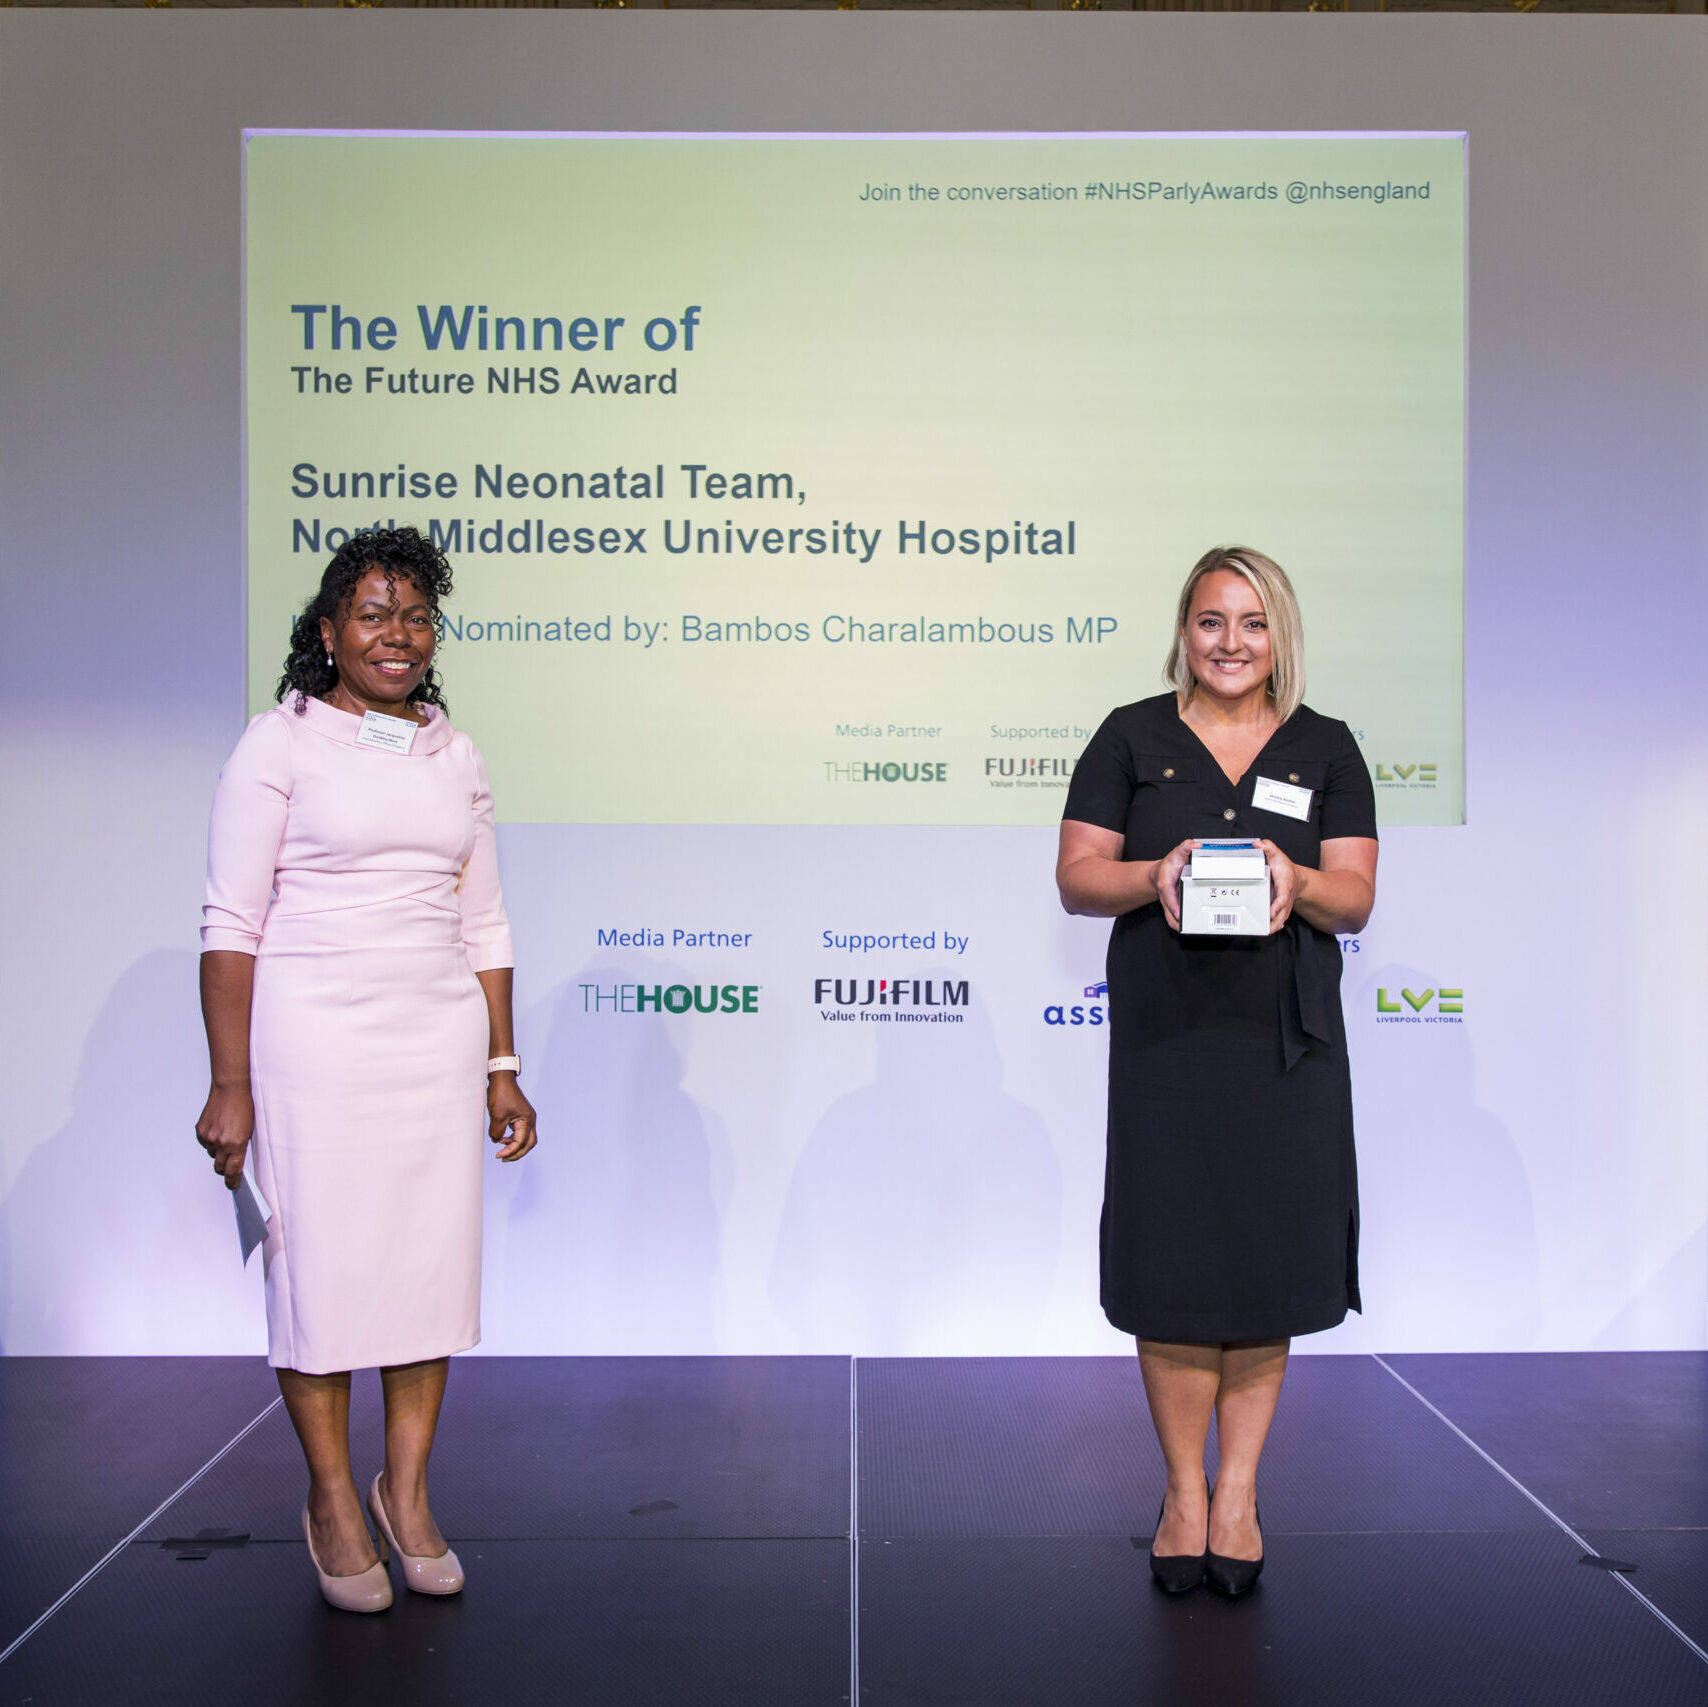 A member of the Sunrise Neonatal Team is stood on stage receiving The Future NHS Award